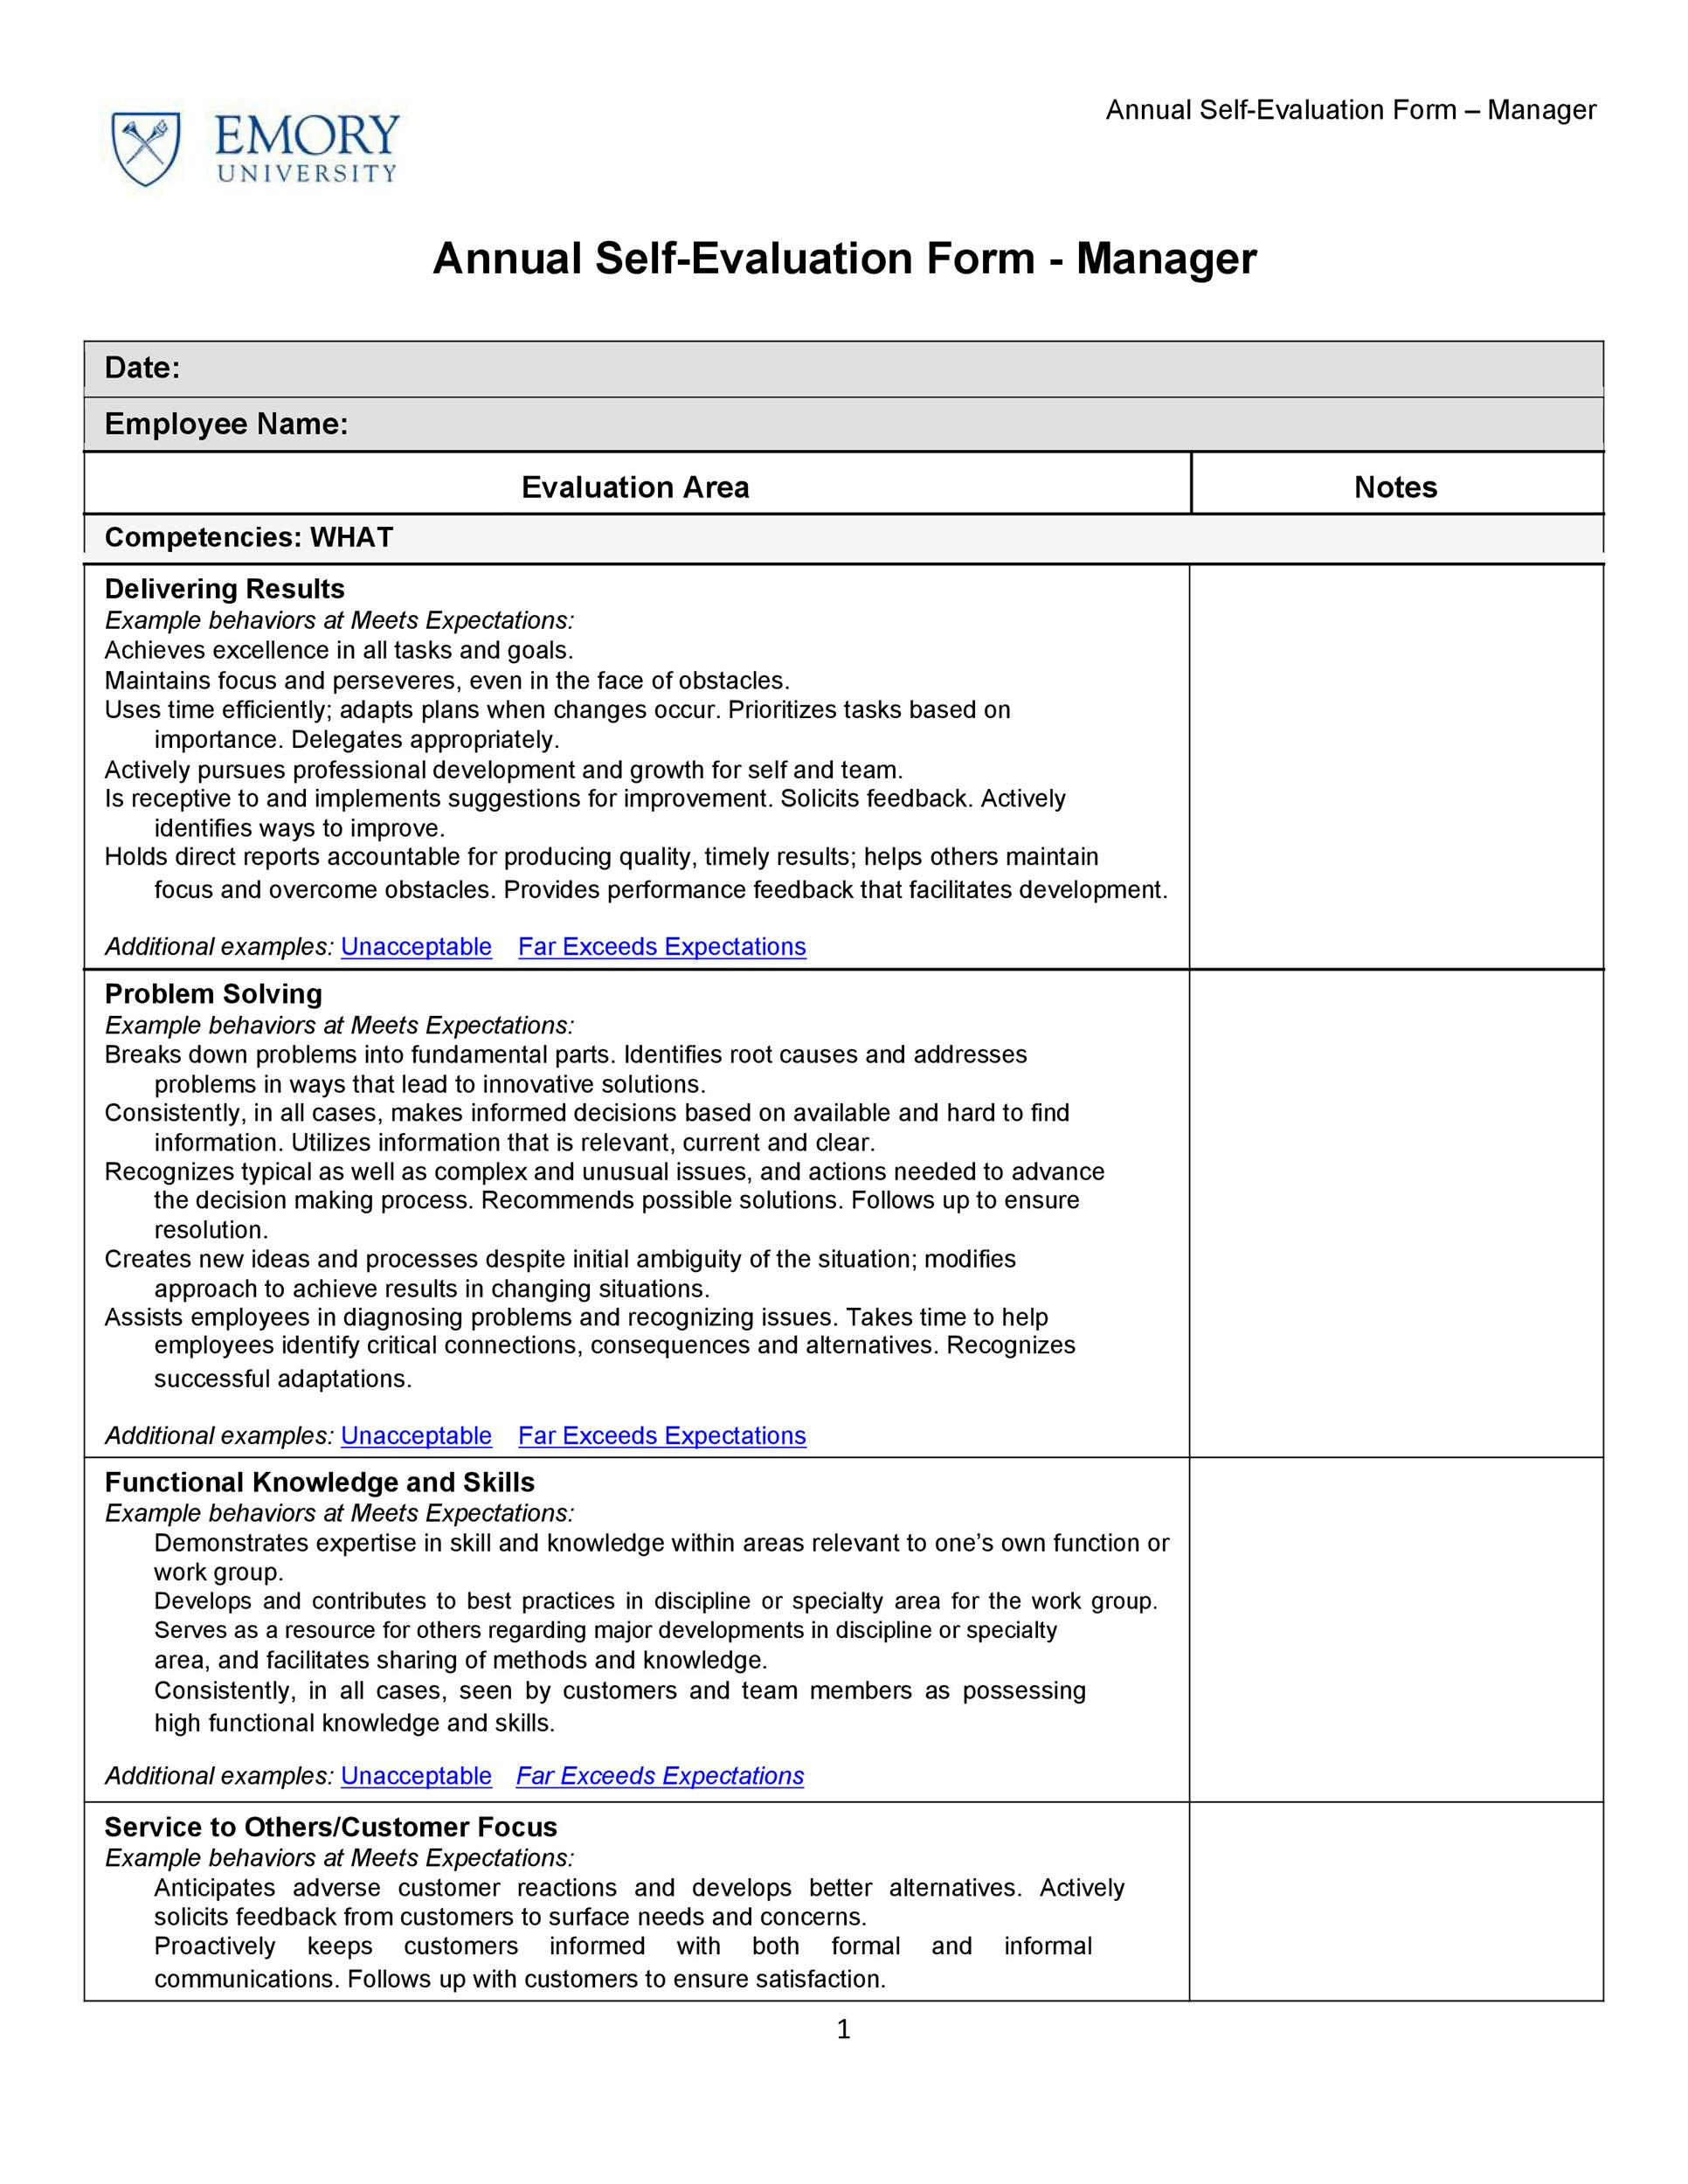 50 Self Evaluation Examples Forms Amp Questions Templatelab